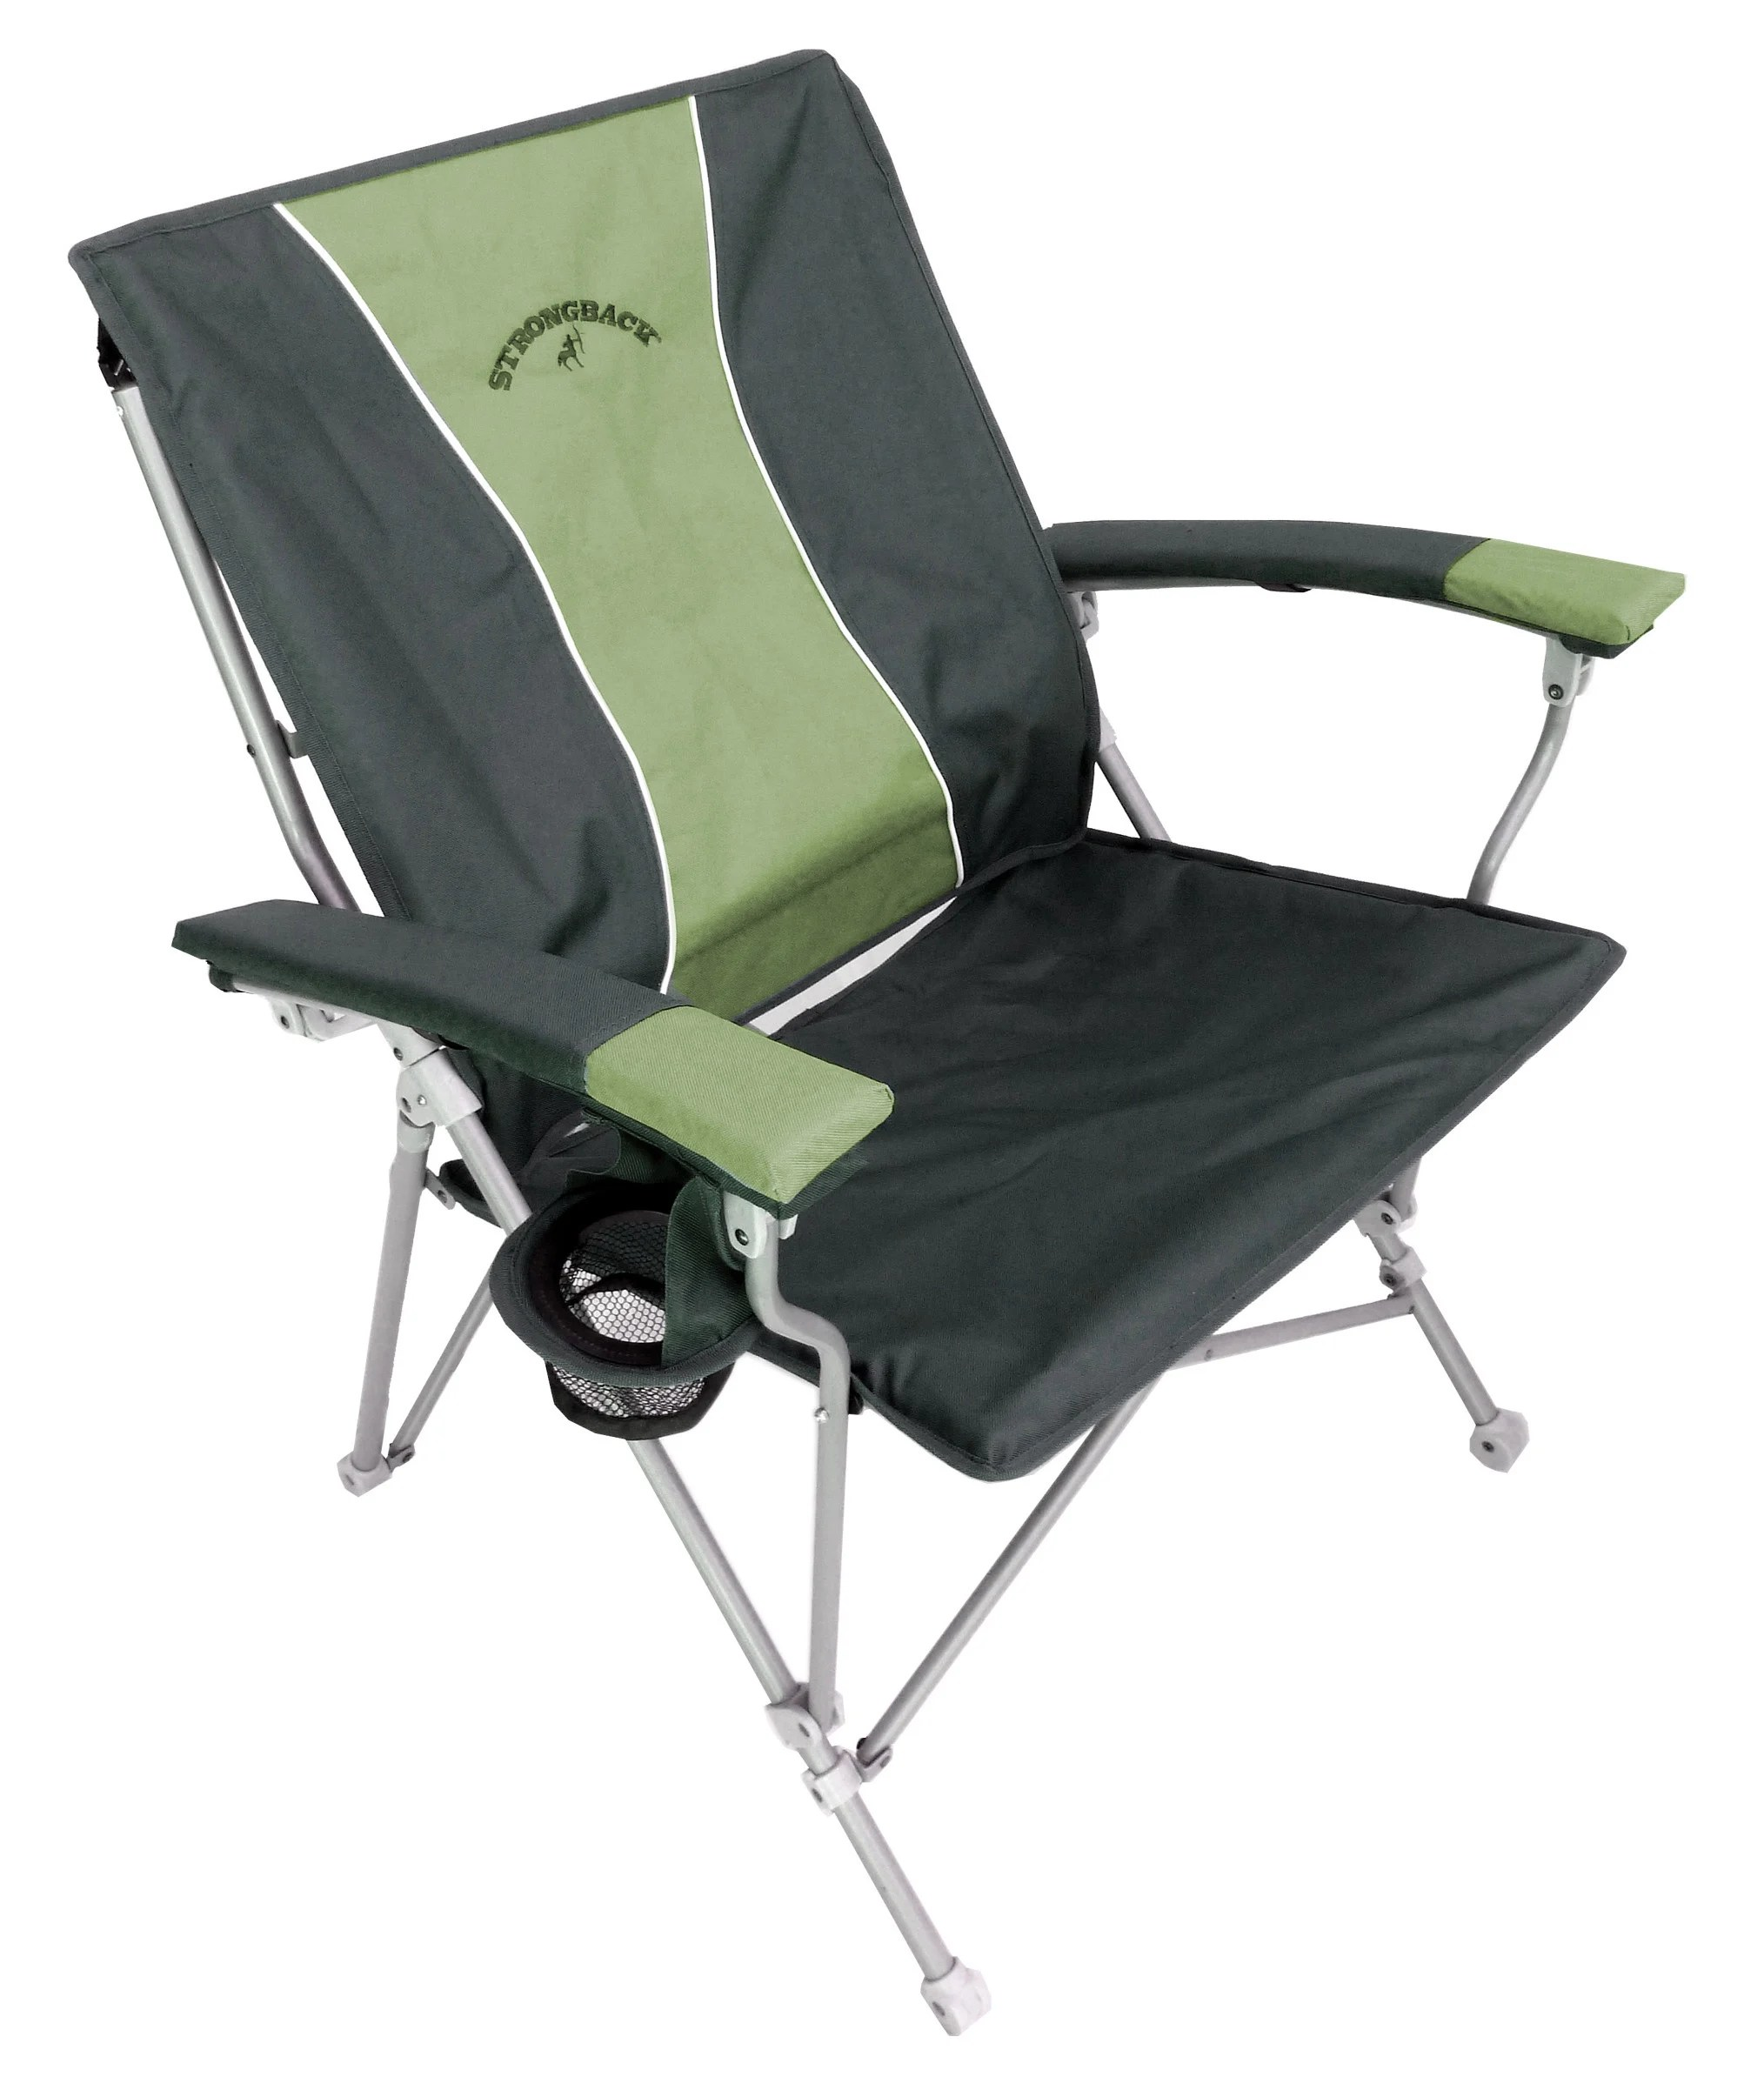 Tailgating Chairs Strongback Chair Review A Camp Chair With Support